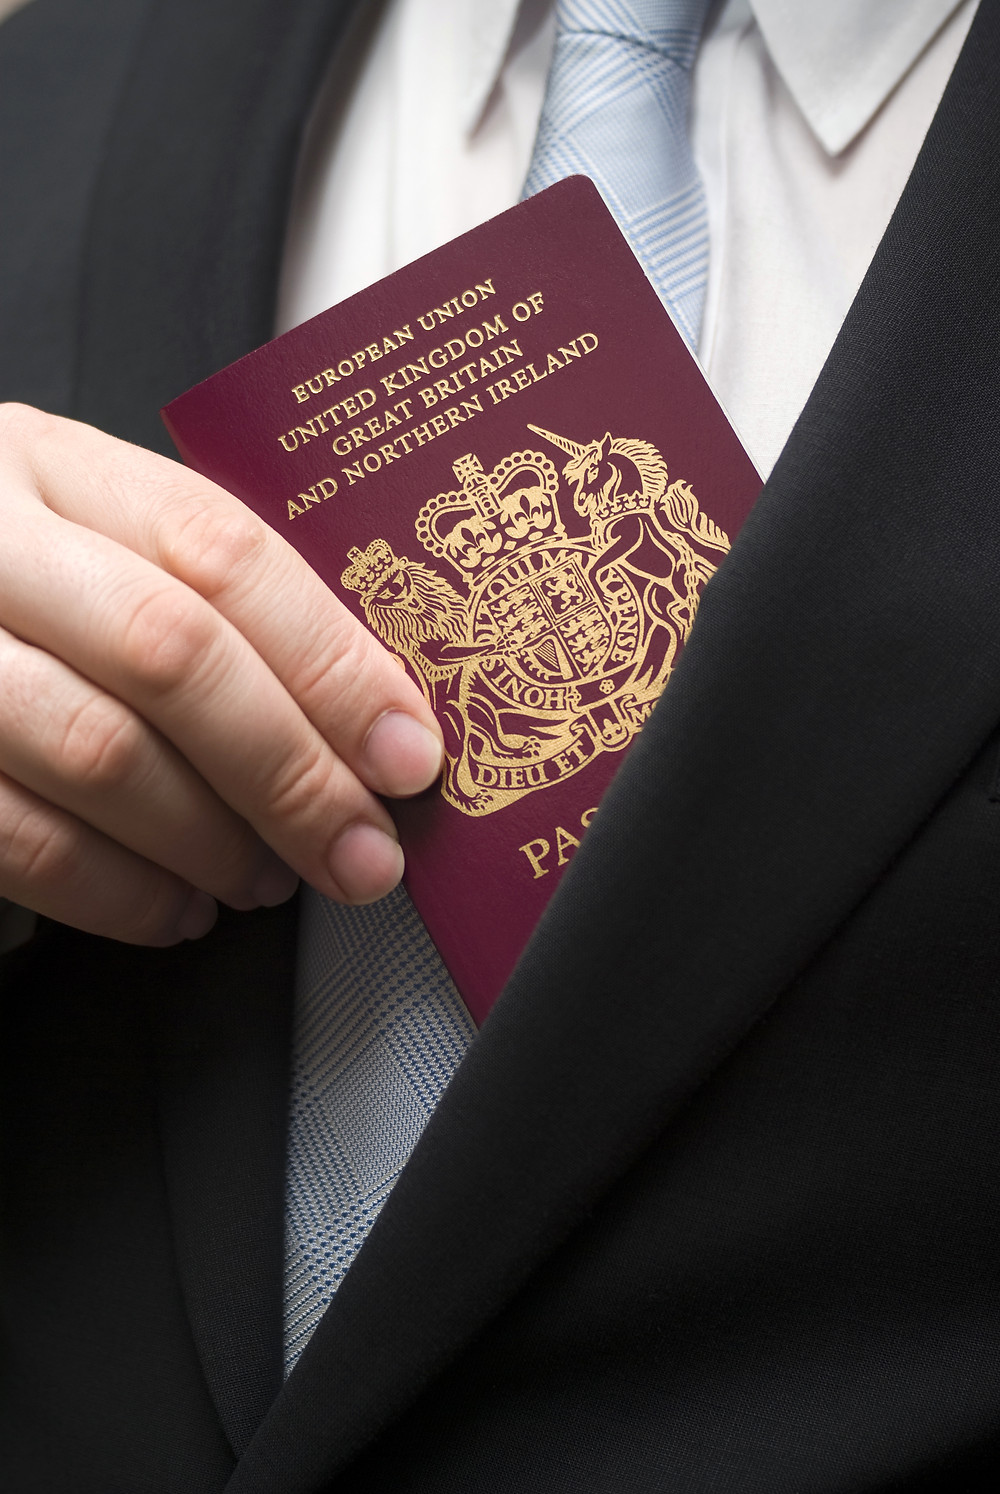 CAA in UK for certifying UK passport